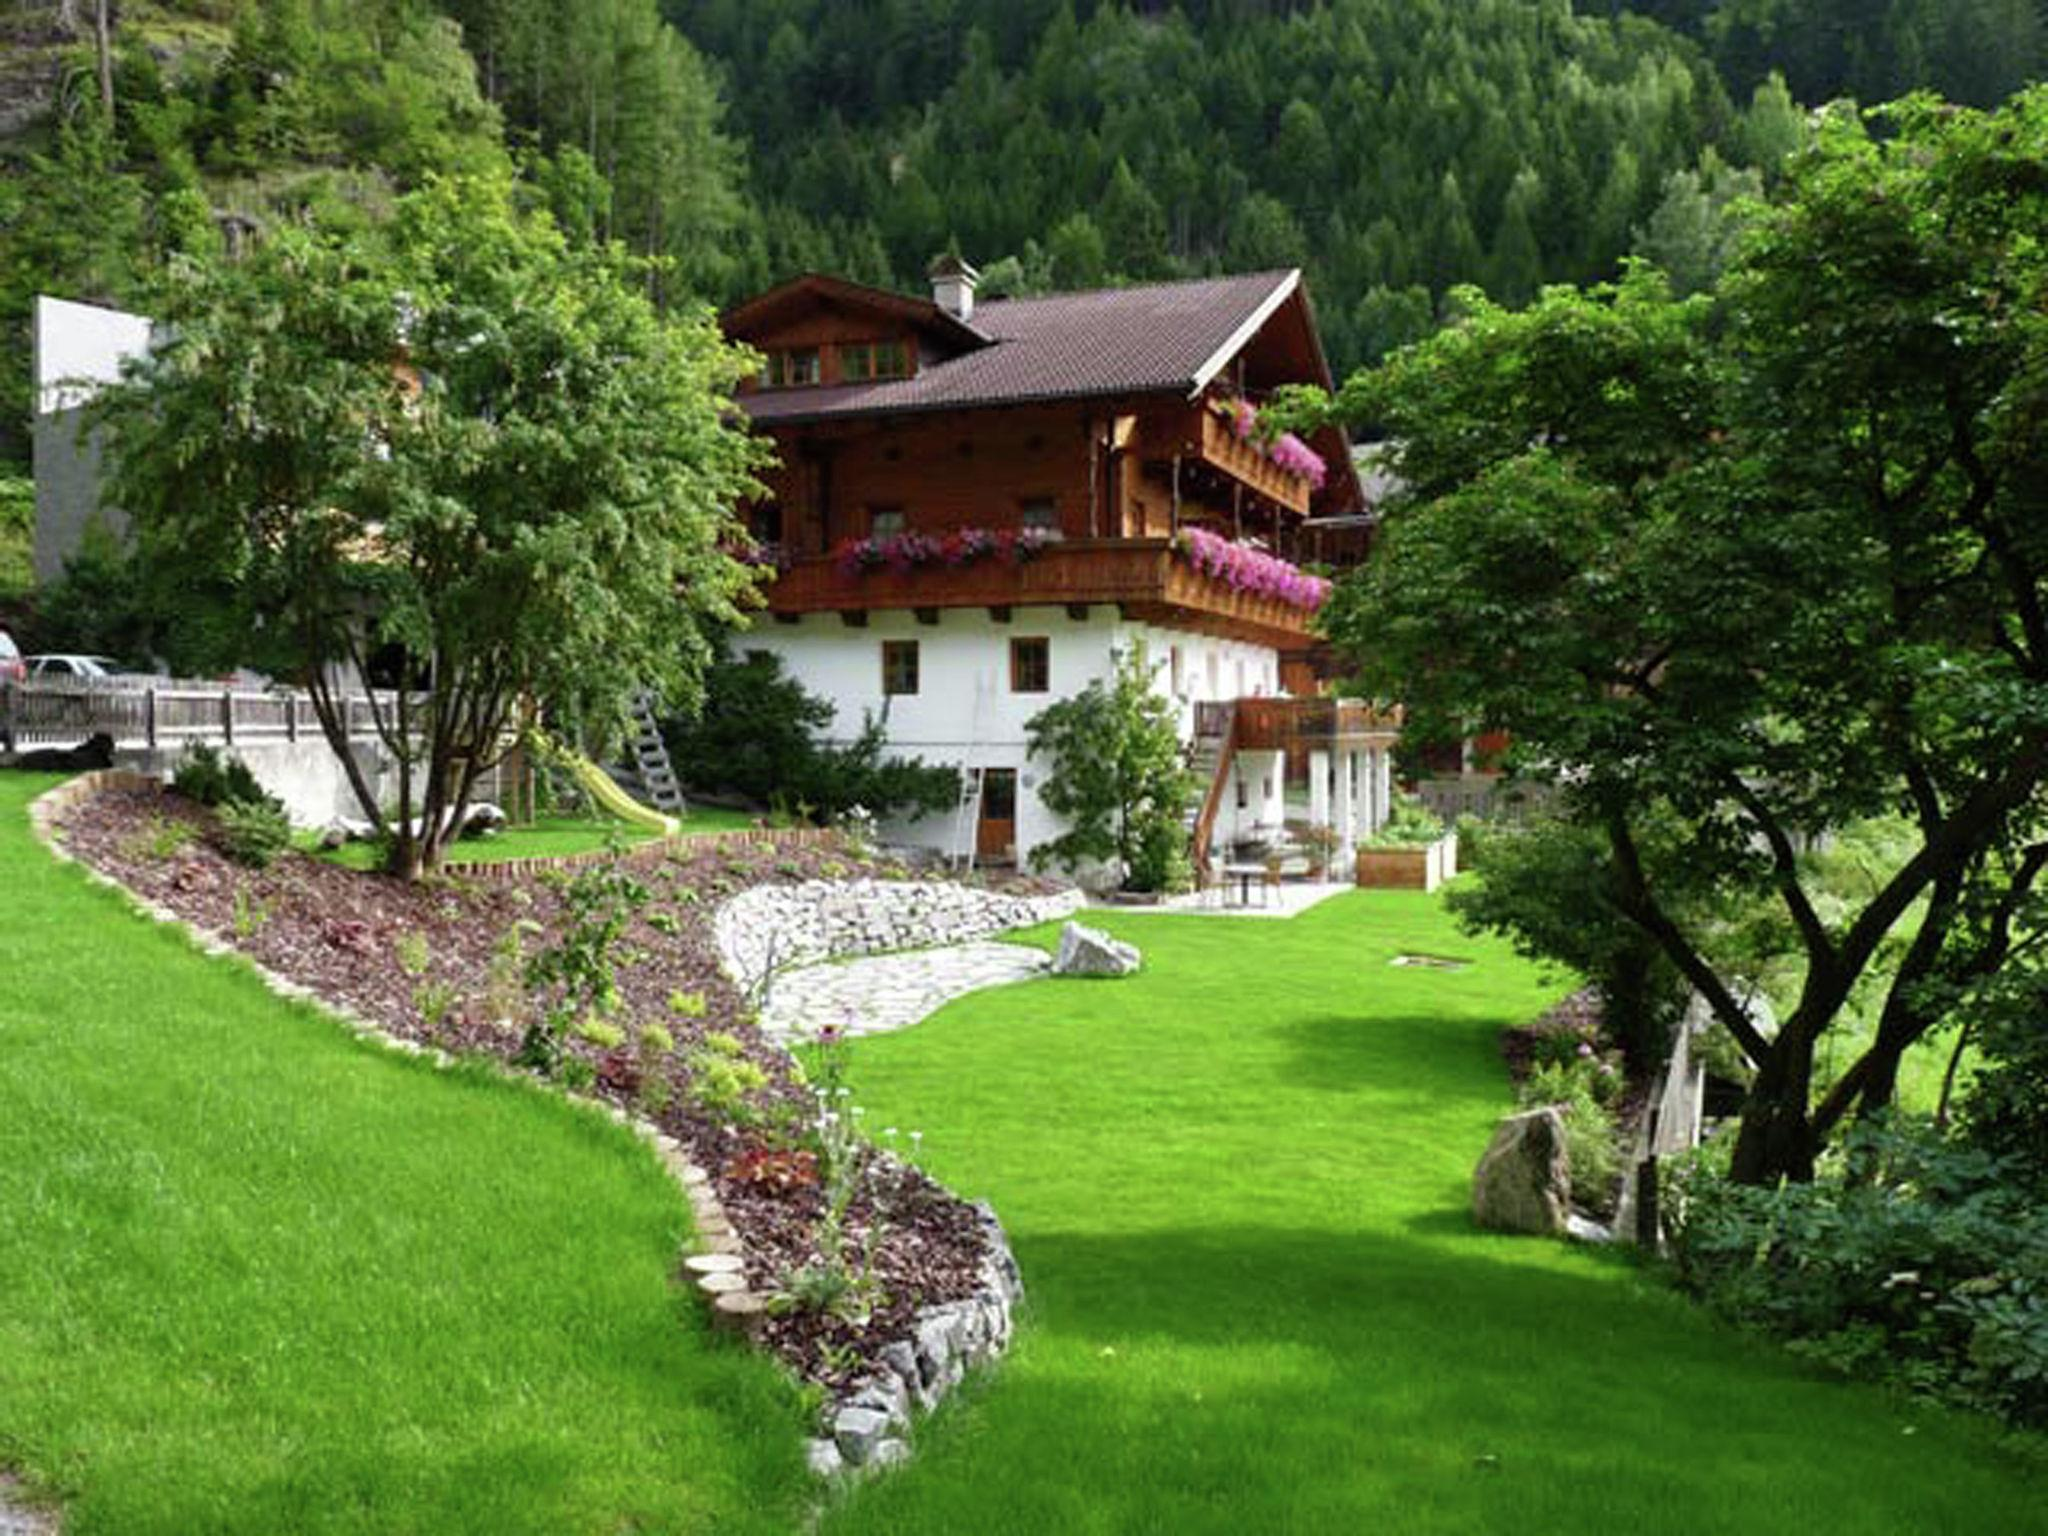 privat ferienhaus osttirol_350-AT-9971-38